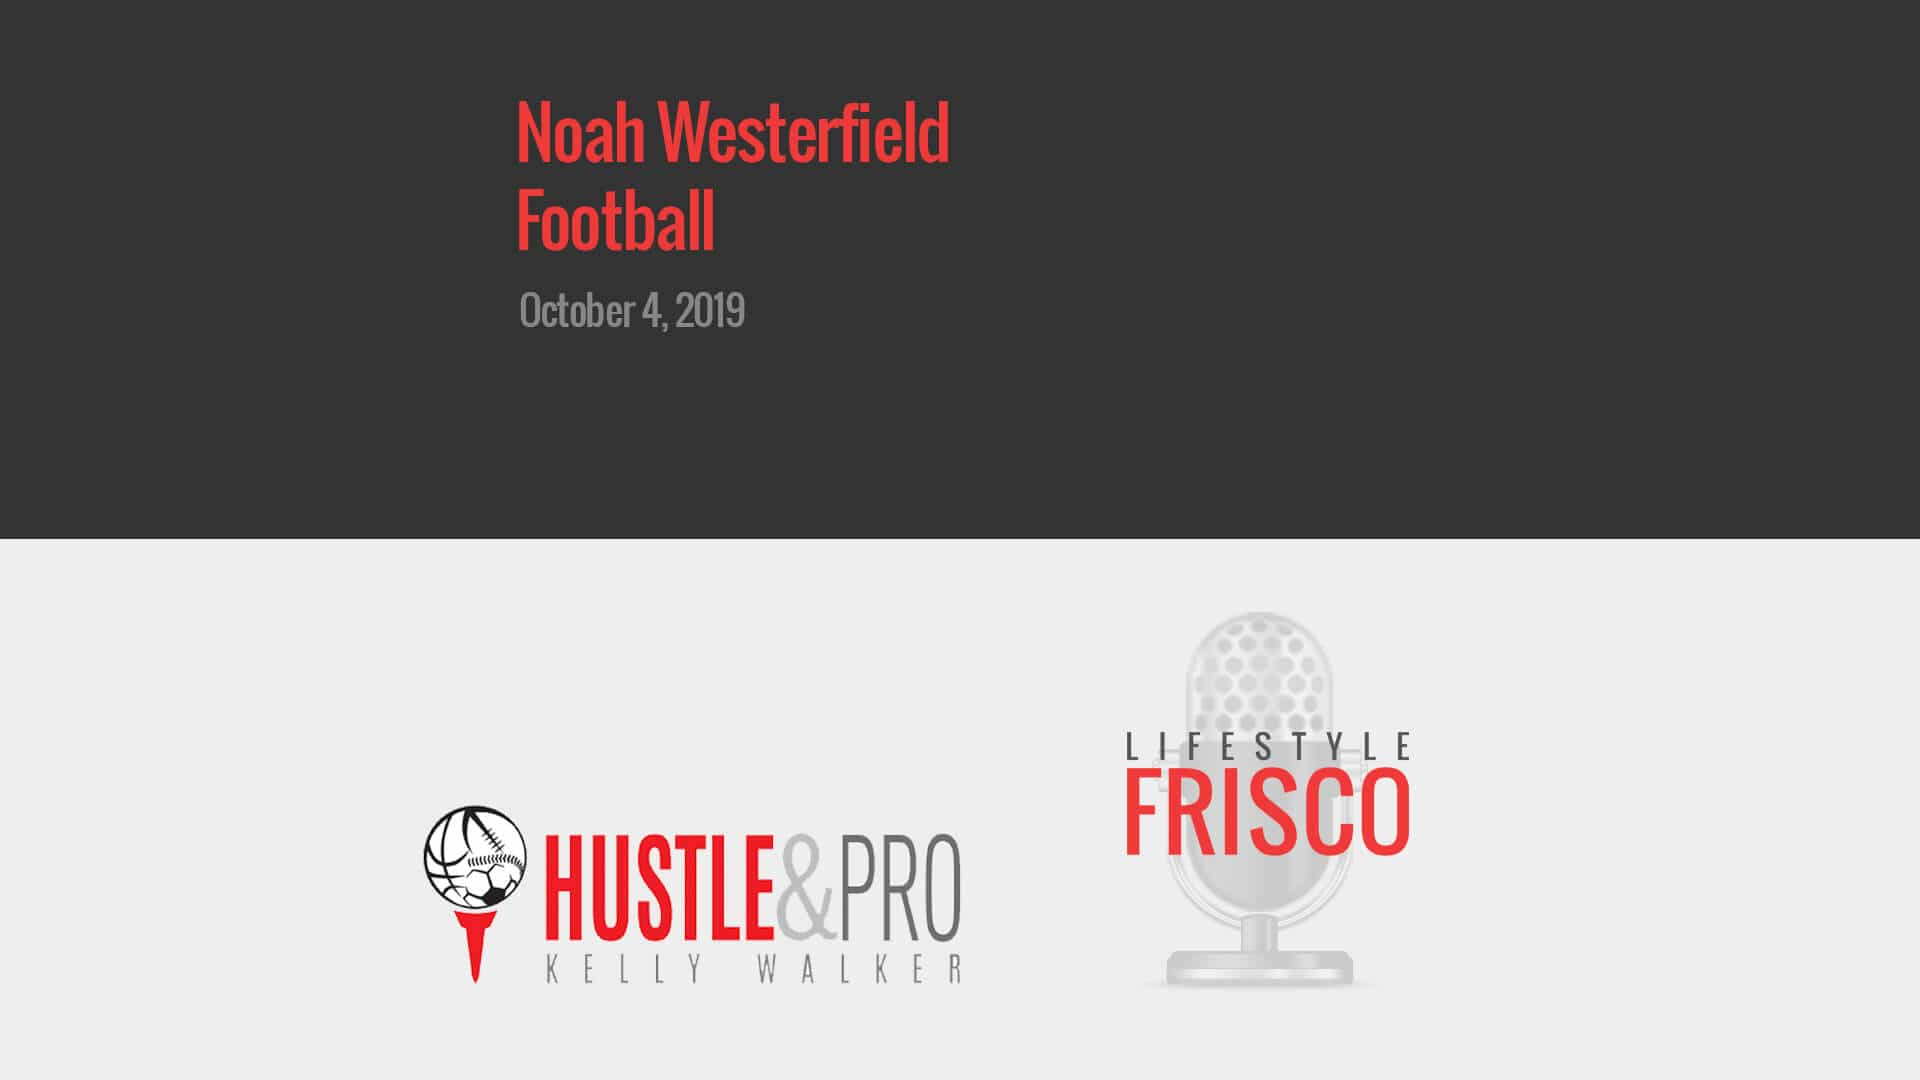 lifestyle frisco podcast Noah Westerfield 033 20191004